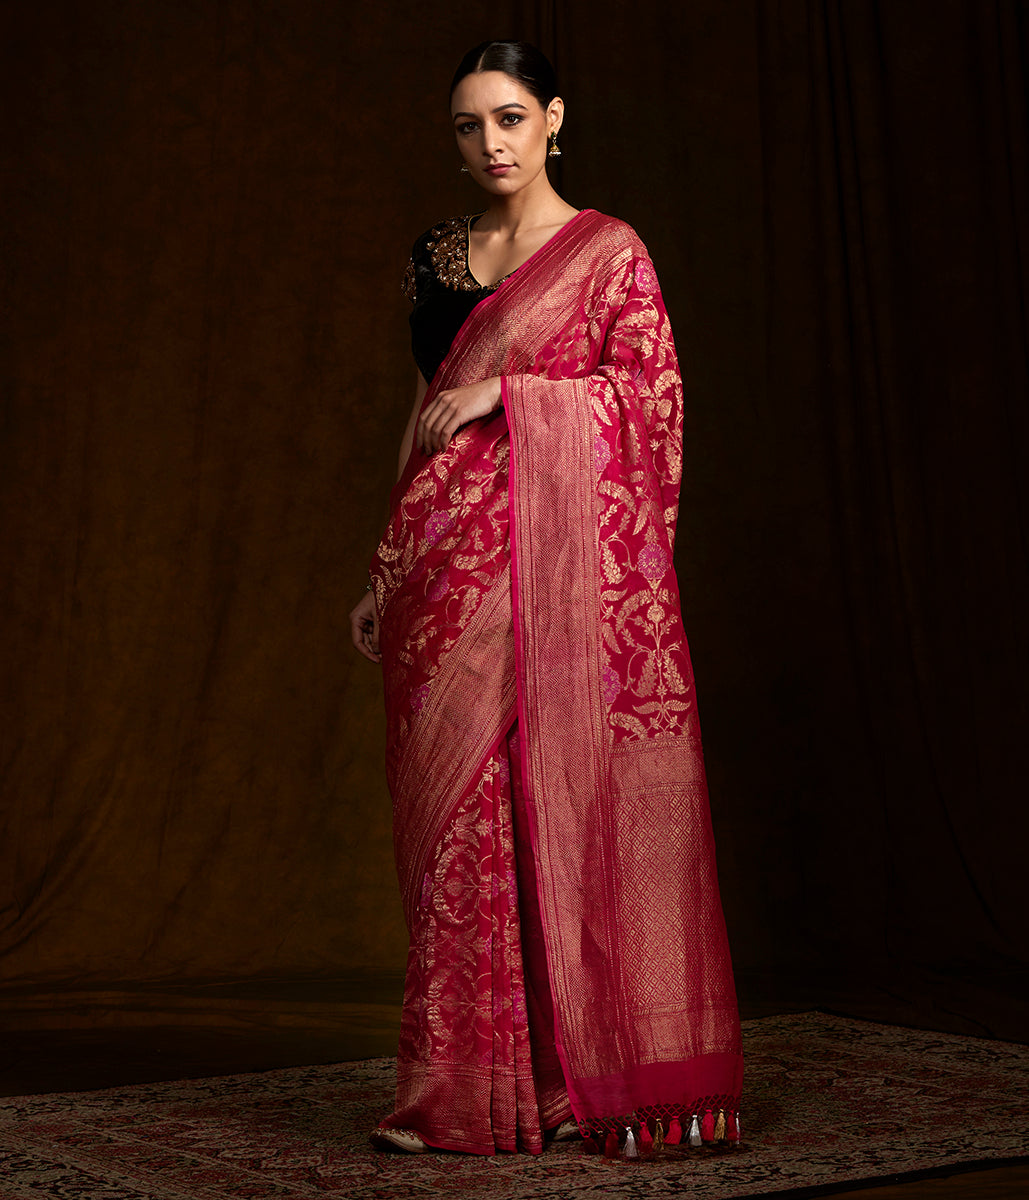 Handwoven pink banarasi jangla in antique zari